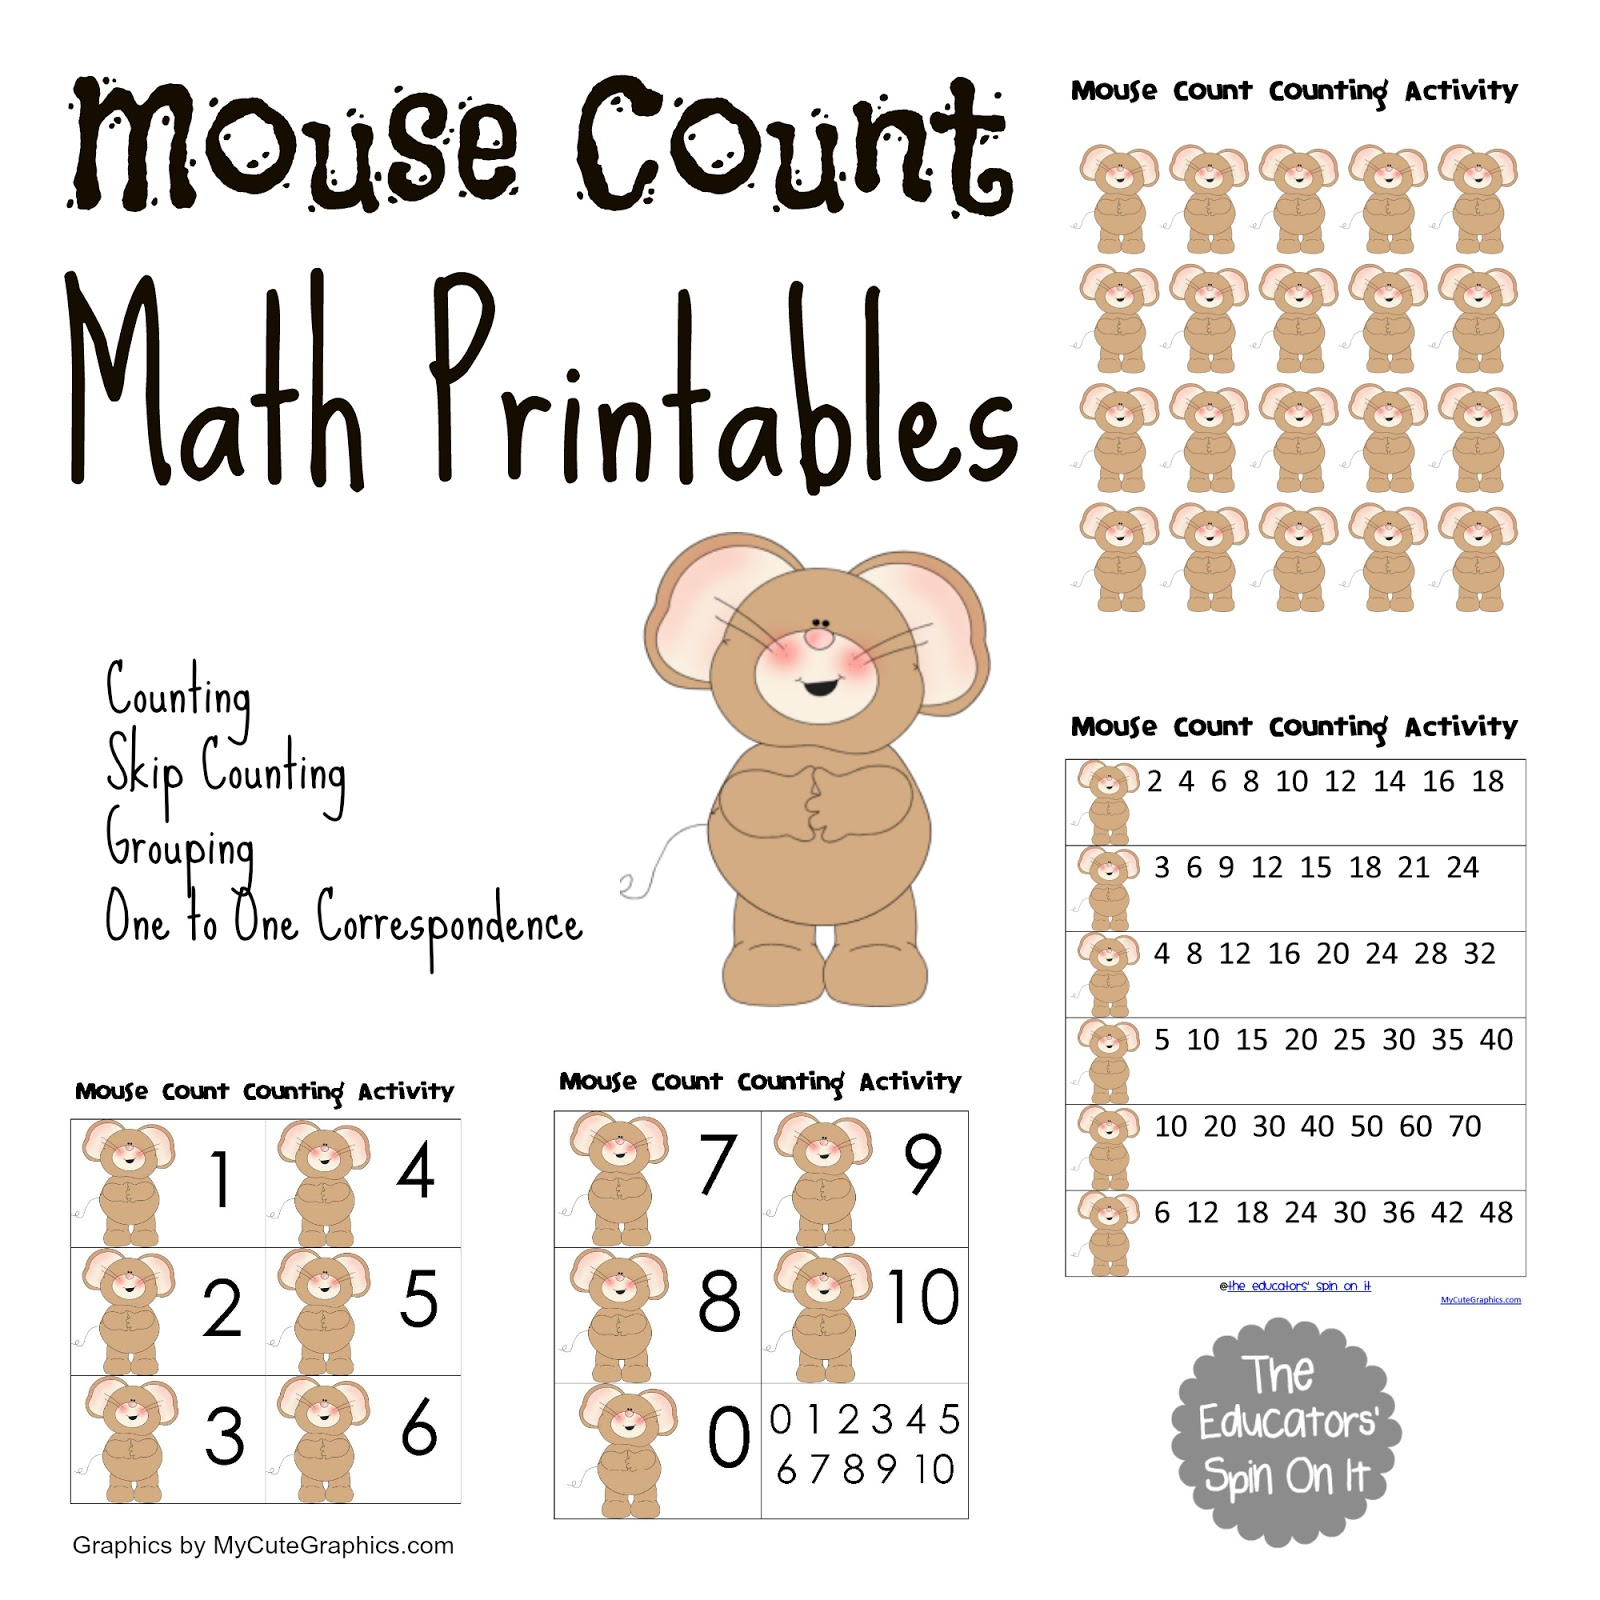 Mouse Count Activities Vbc Summer Camp